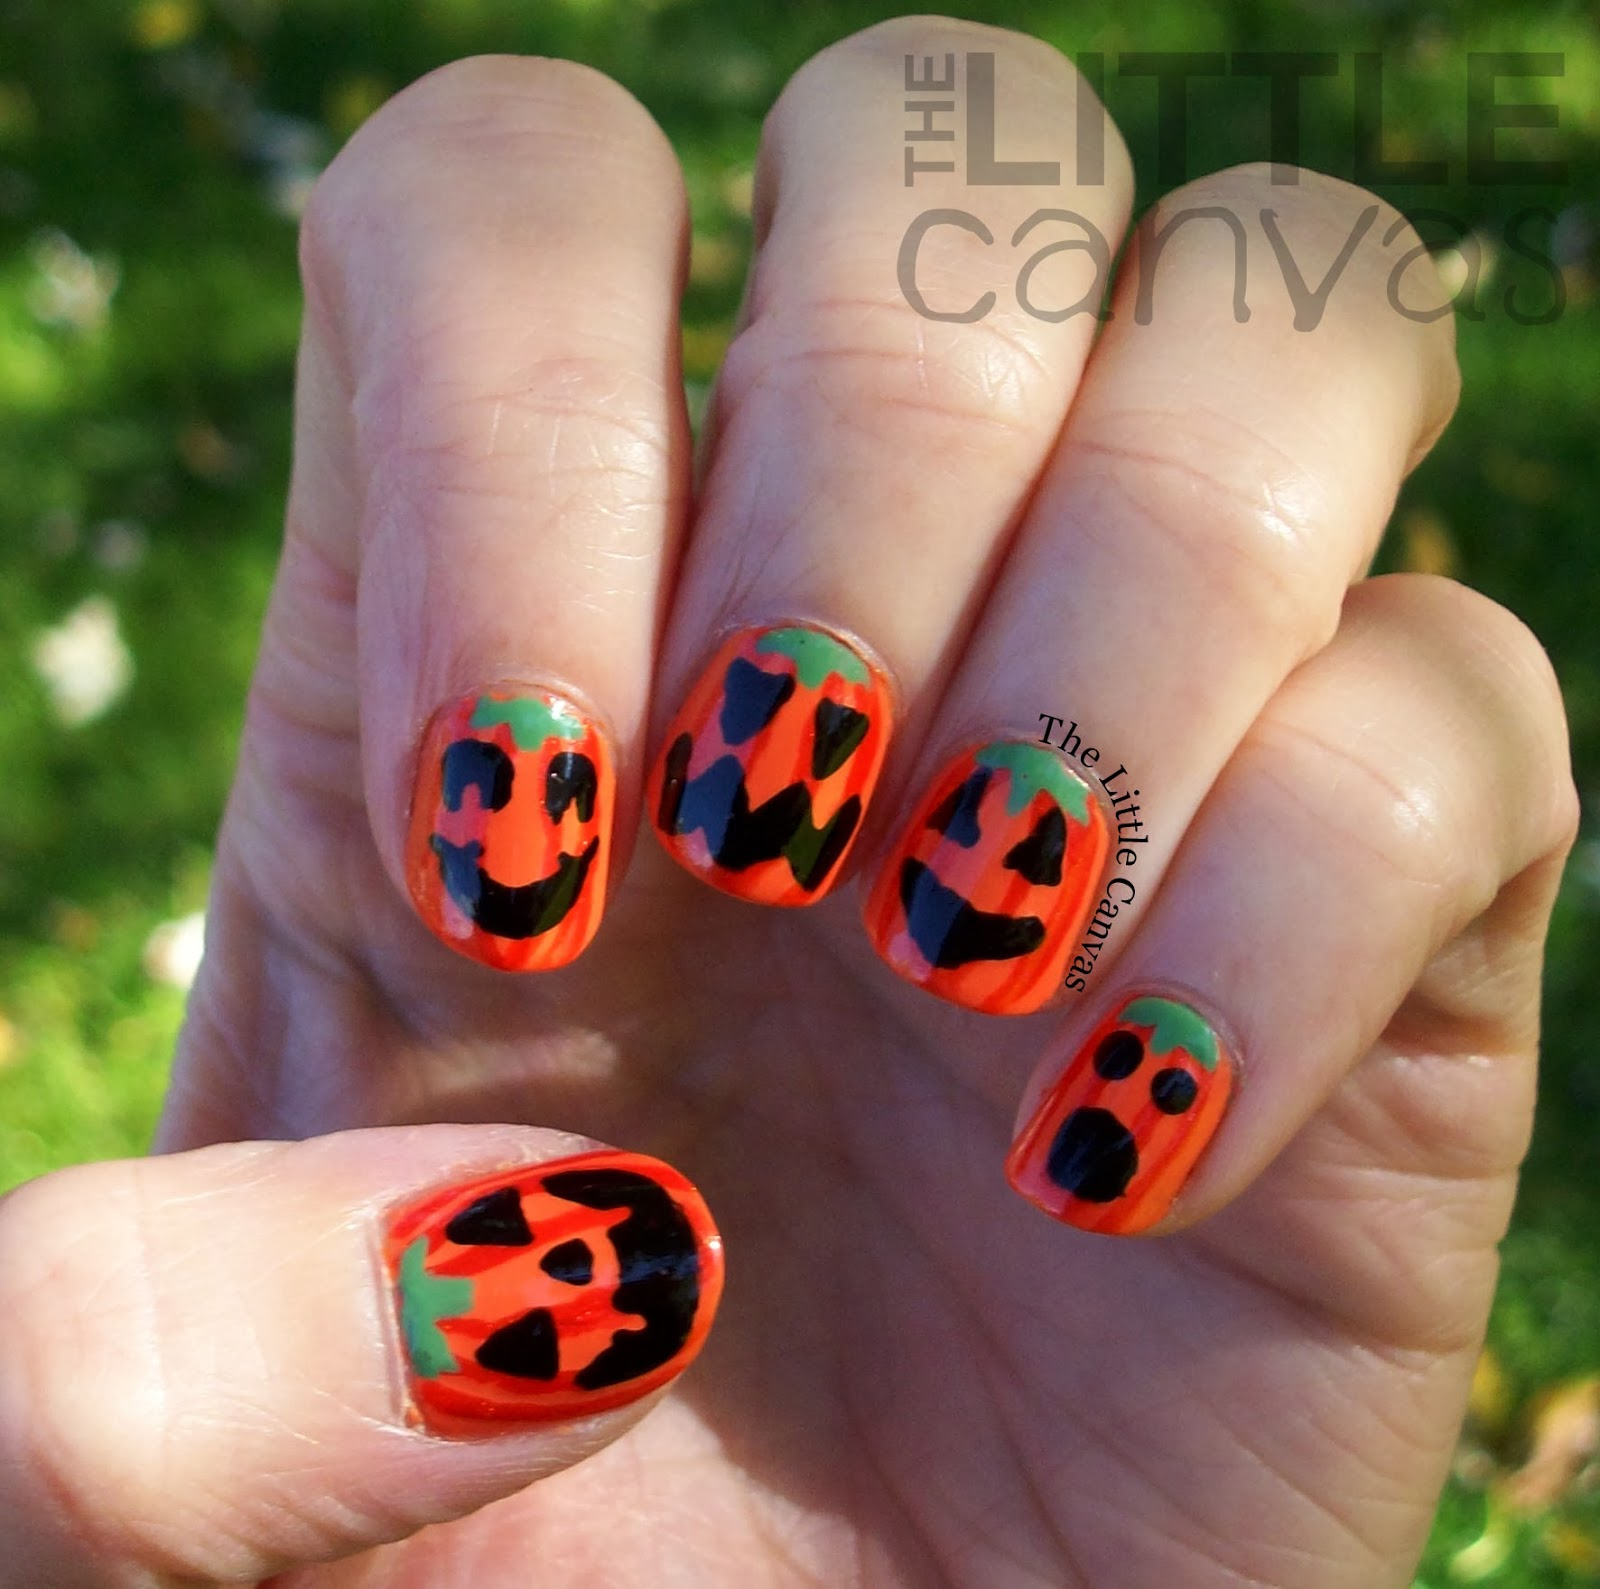 Bestie Twin Nails - Jack O\'Lantern Nails! - The Little Canvas